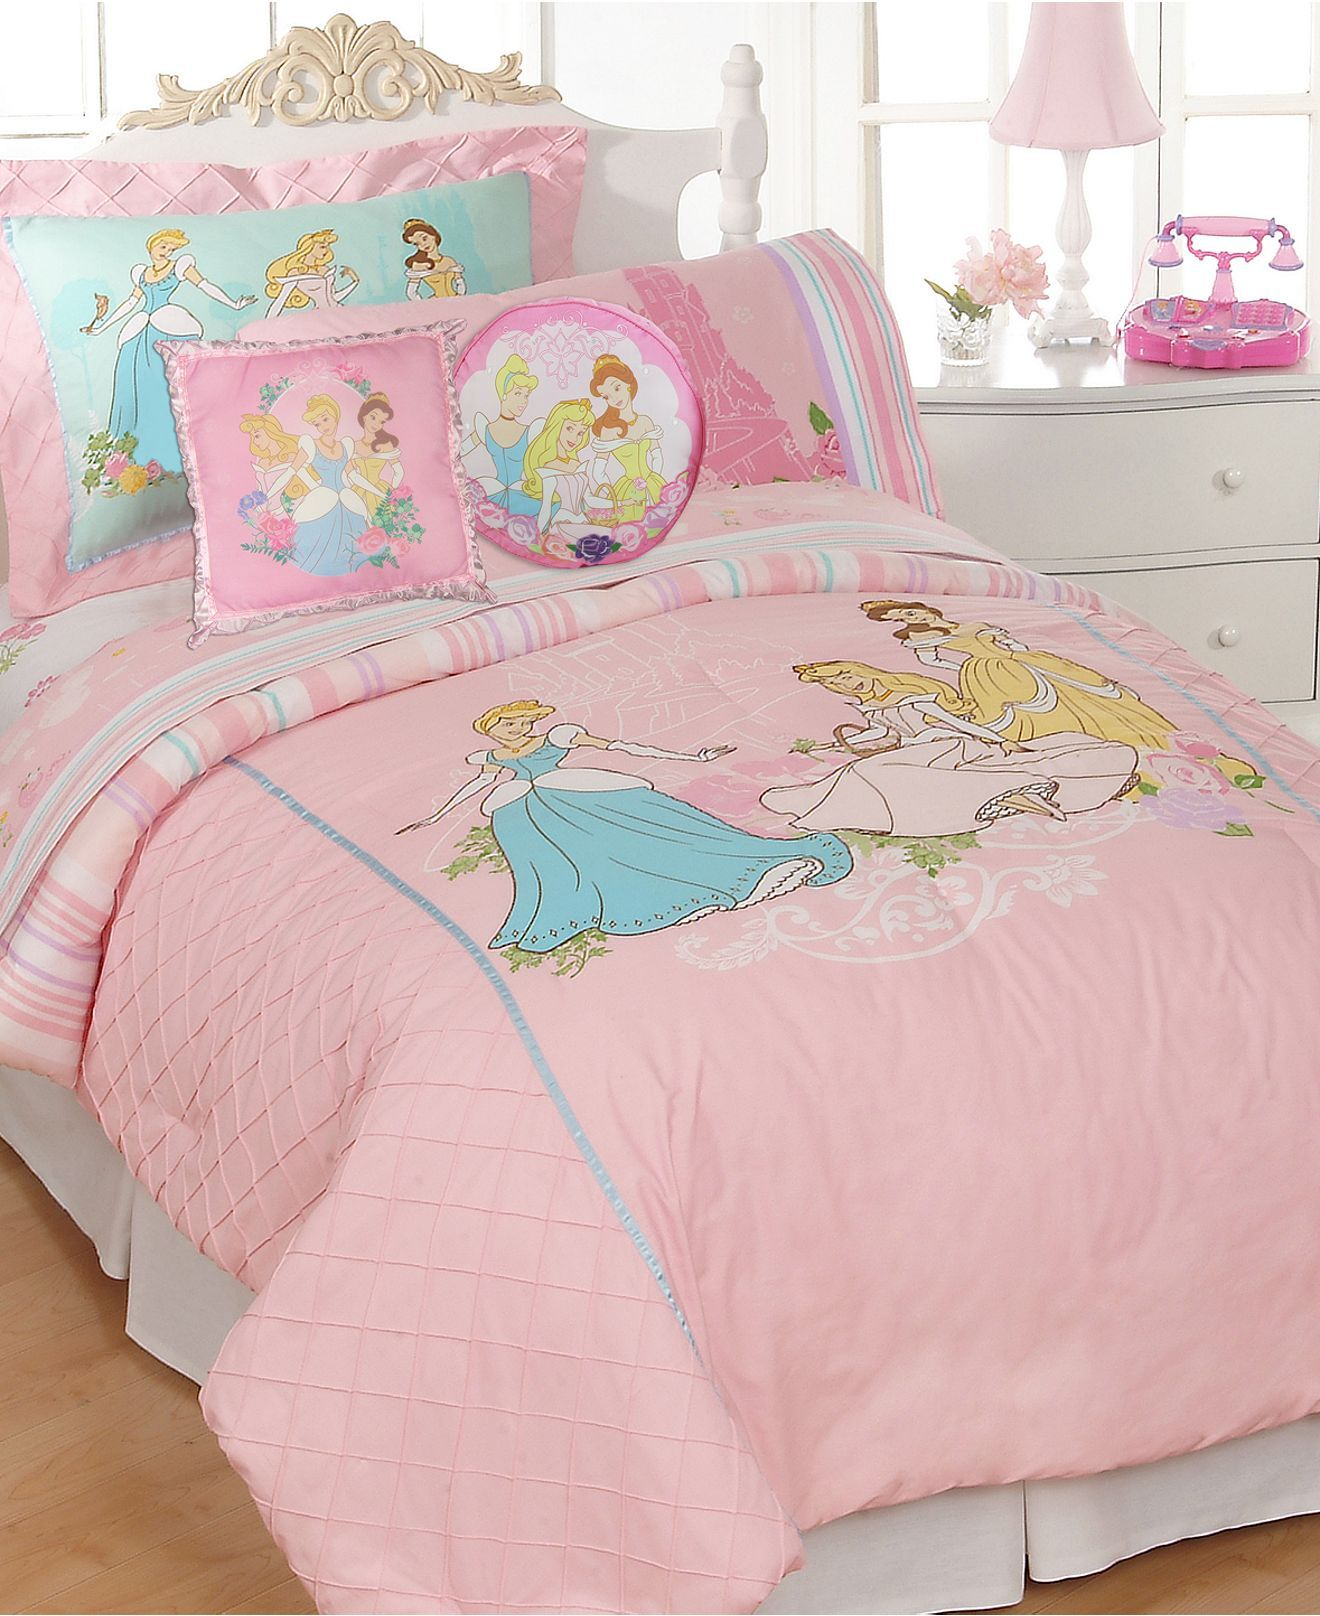 Disney Bedding, Kids Disney Princesses Comforter Sets - Bed in a Bag - Bed &